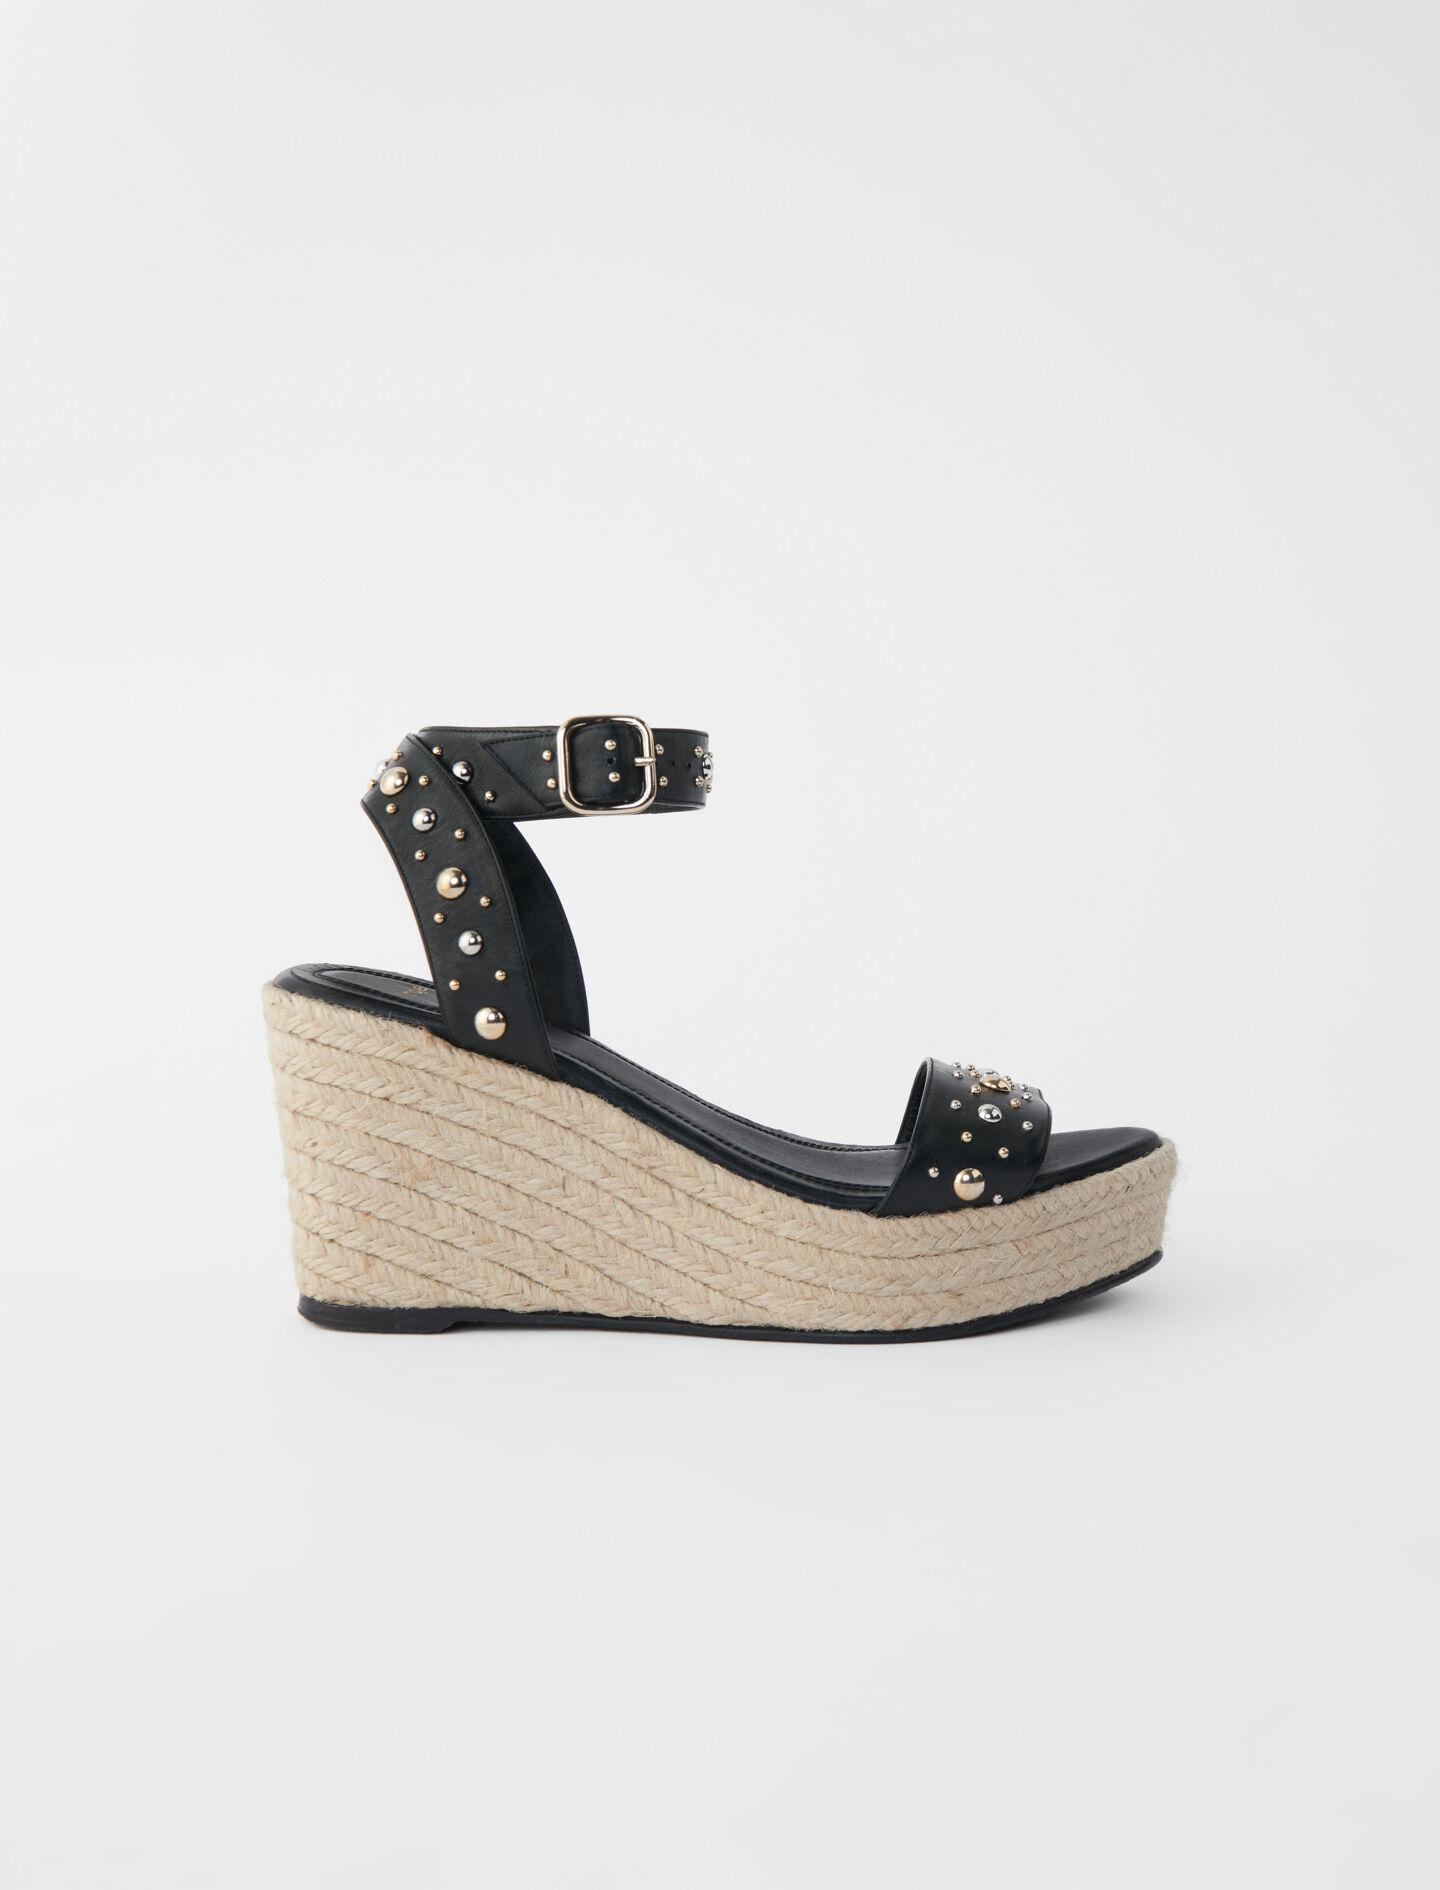 WEDGE SANDALS WITH LEATHER STRAPS